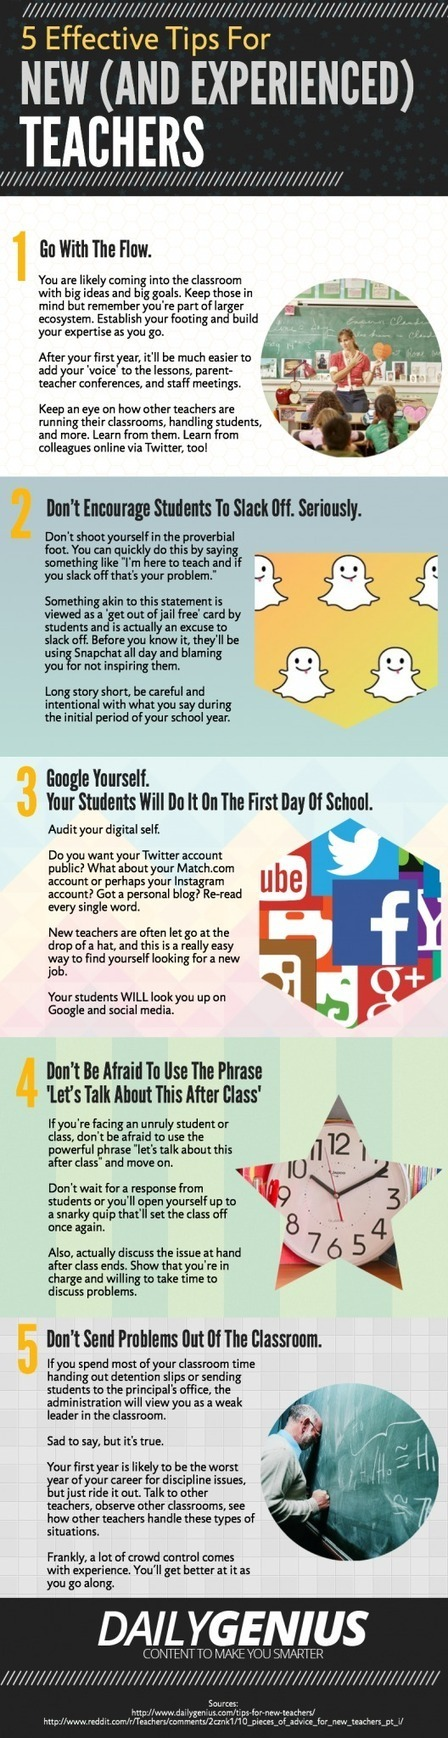 5 Tips for New Teachers Infographic | Fun Lessons for Teaching English | Scoop.it